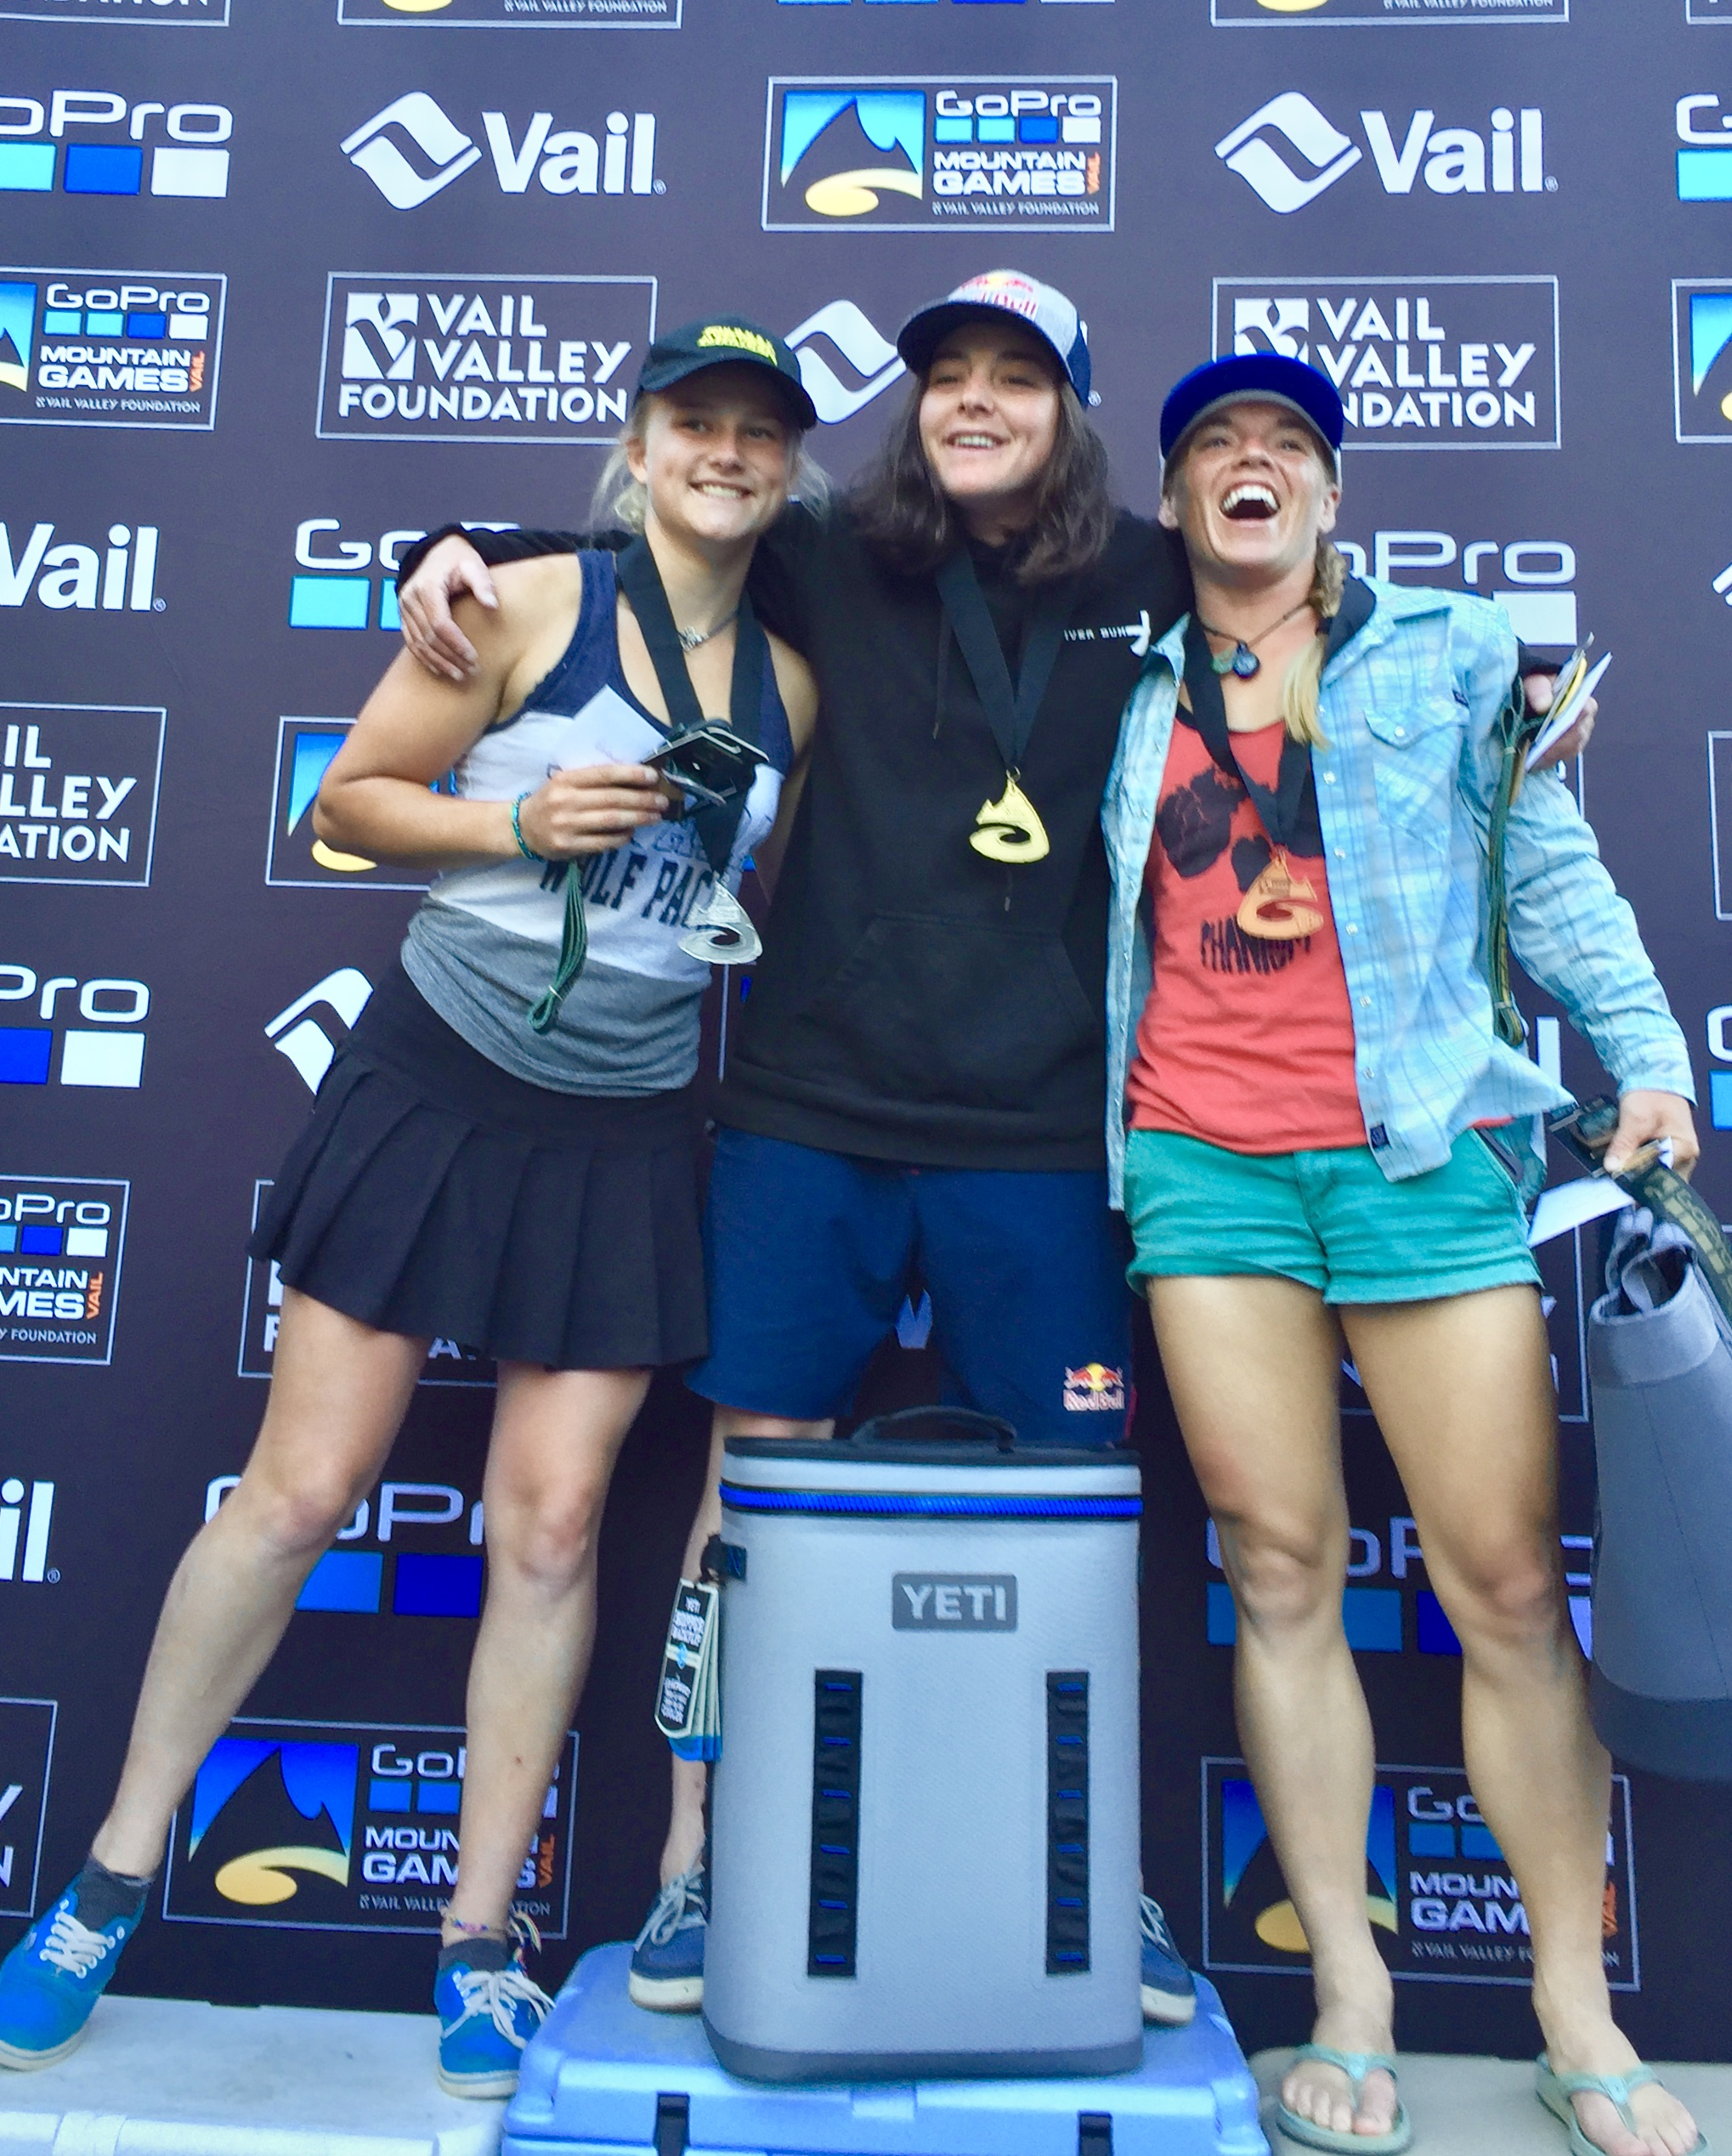 We've seen this podium before but every year we all get better looking.